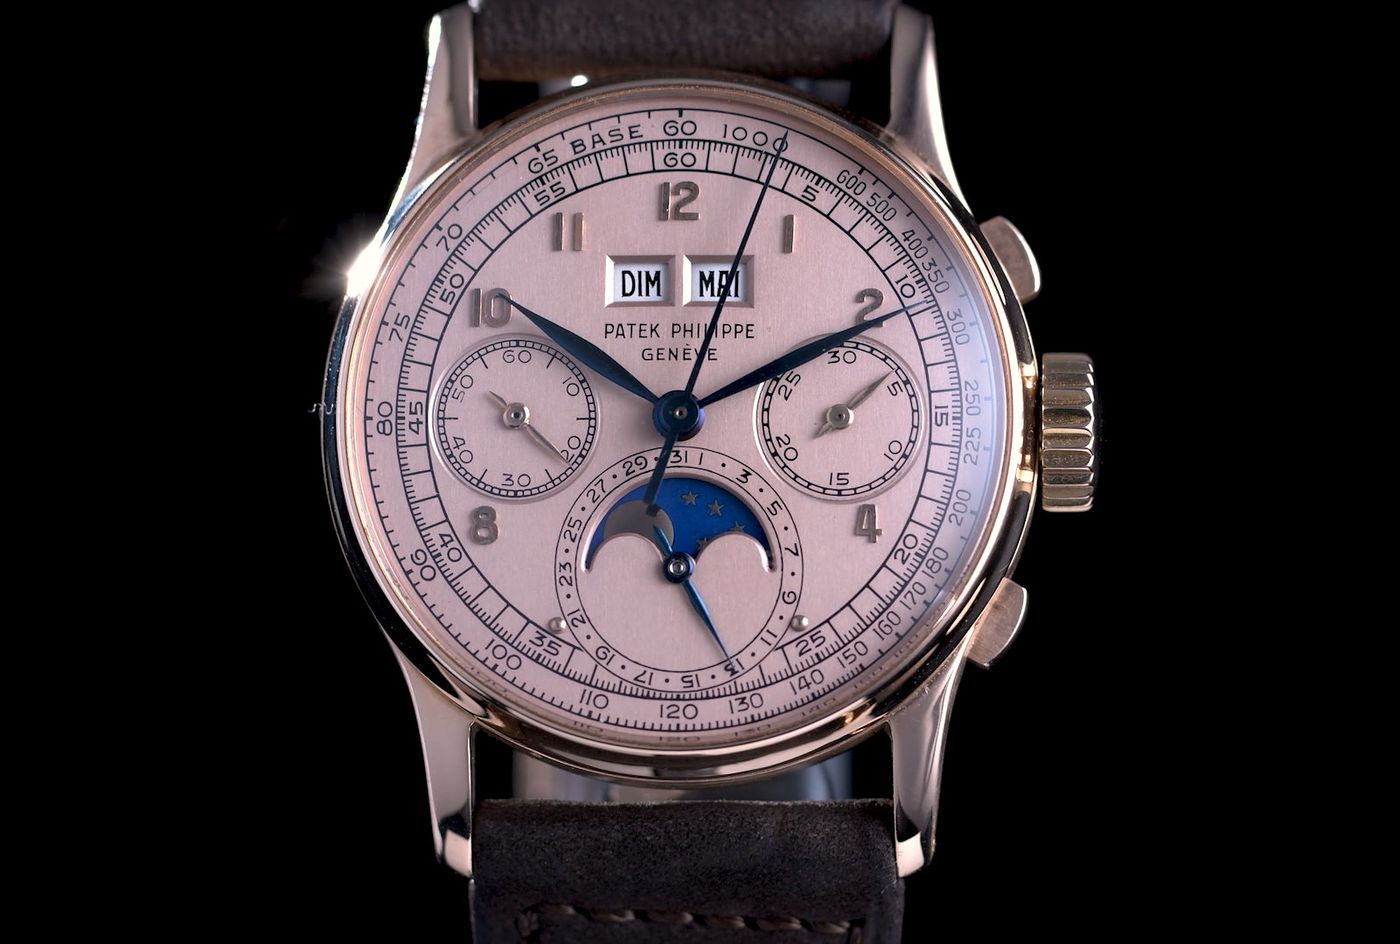 Watch our trailer to learn more about the exceptional timepieces coming to auction this season in Geneva.